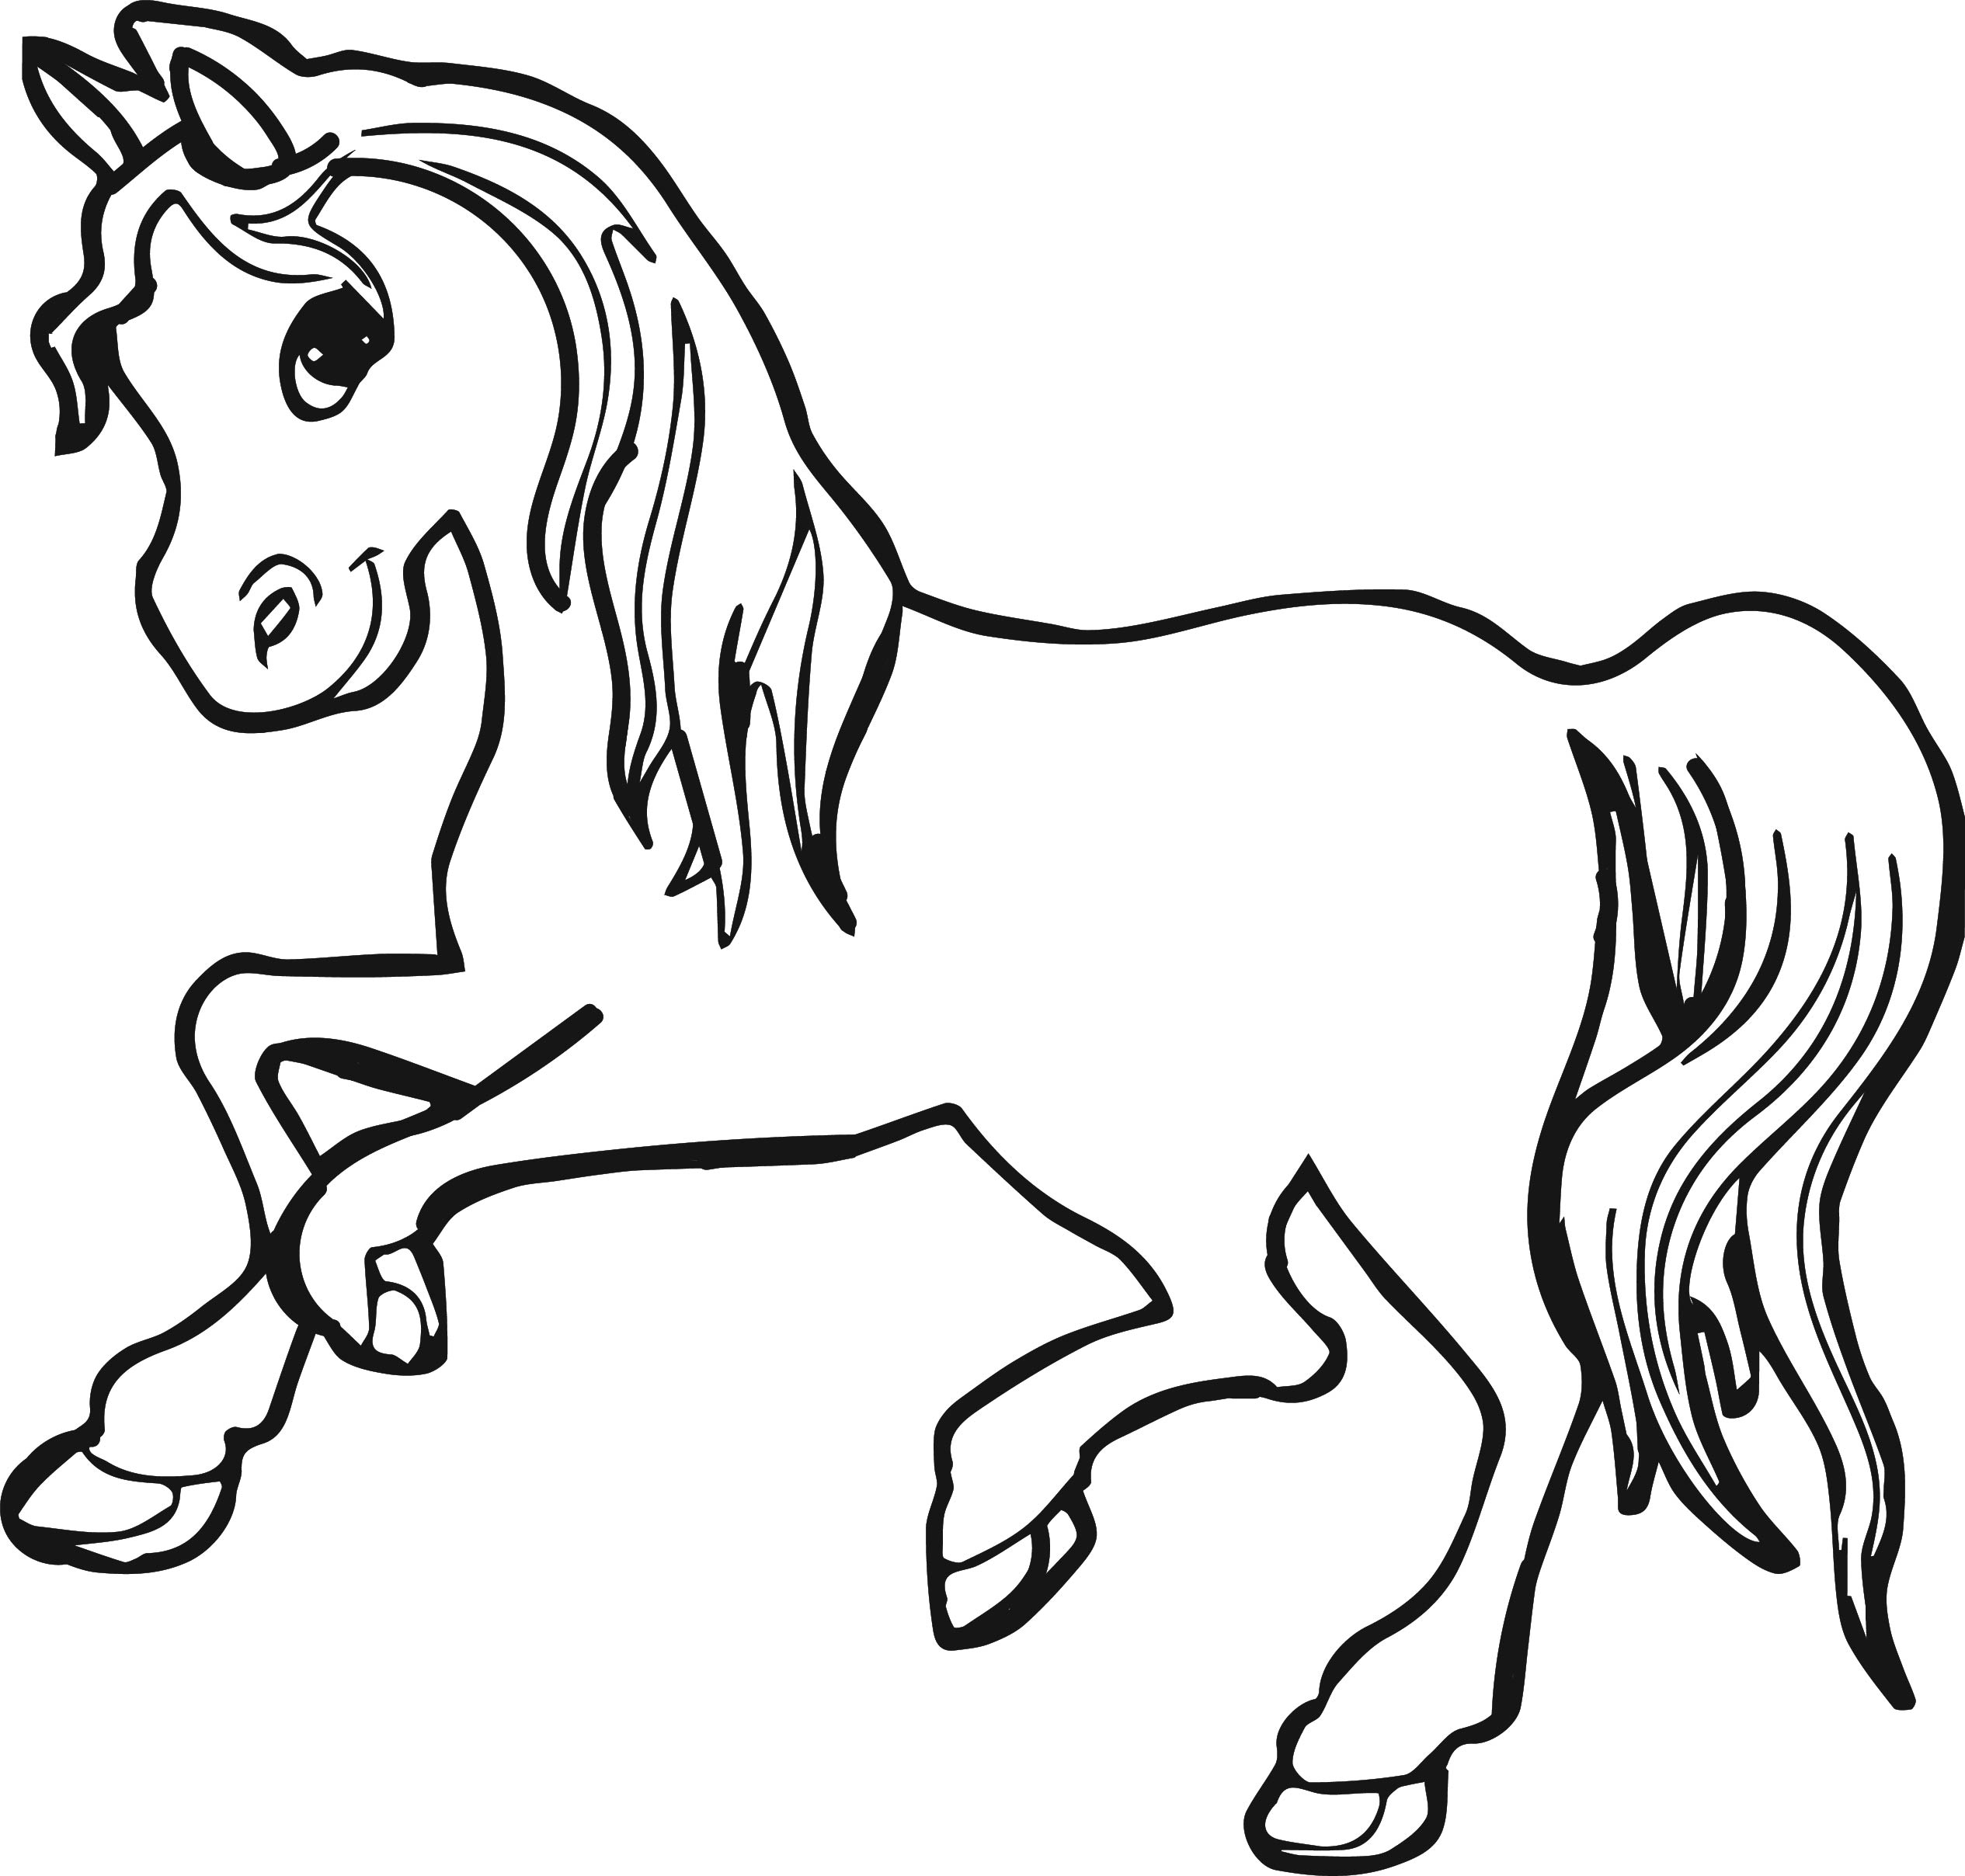 outline for coloring lily coloring pages to download and print for free for outline coloring